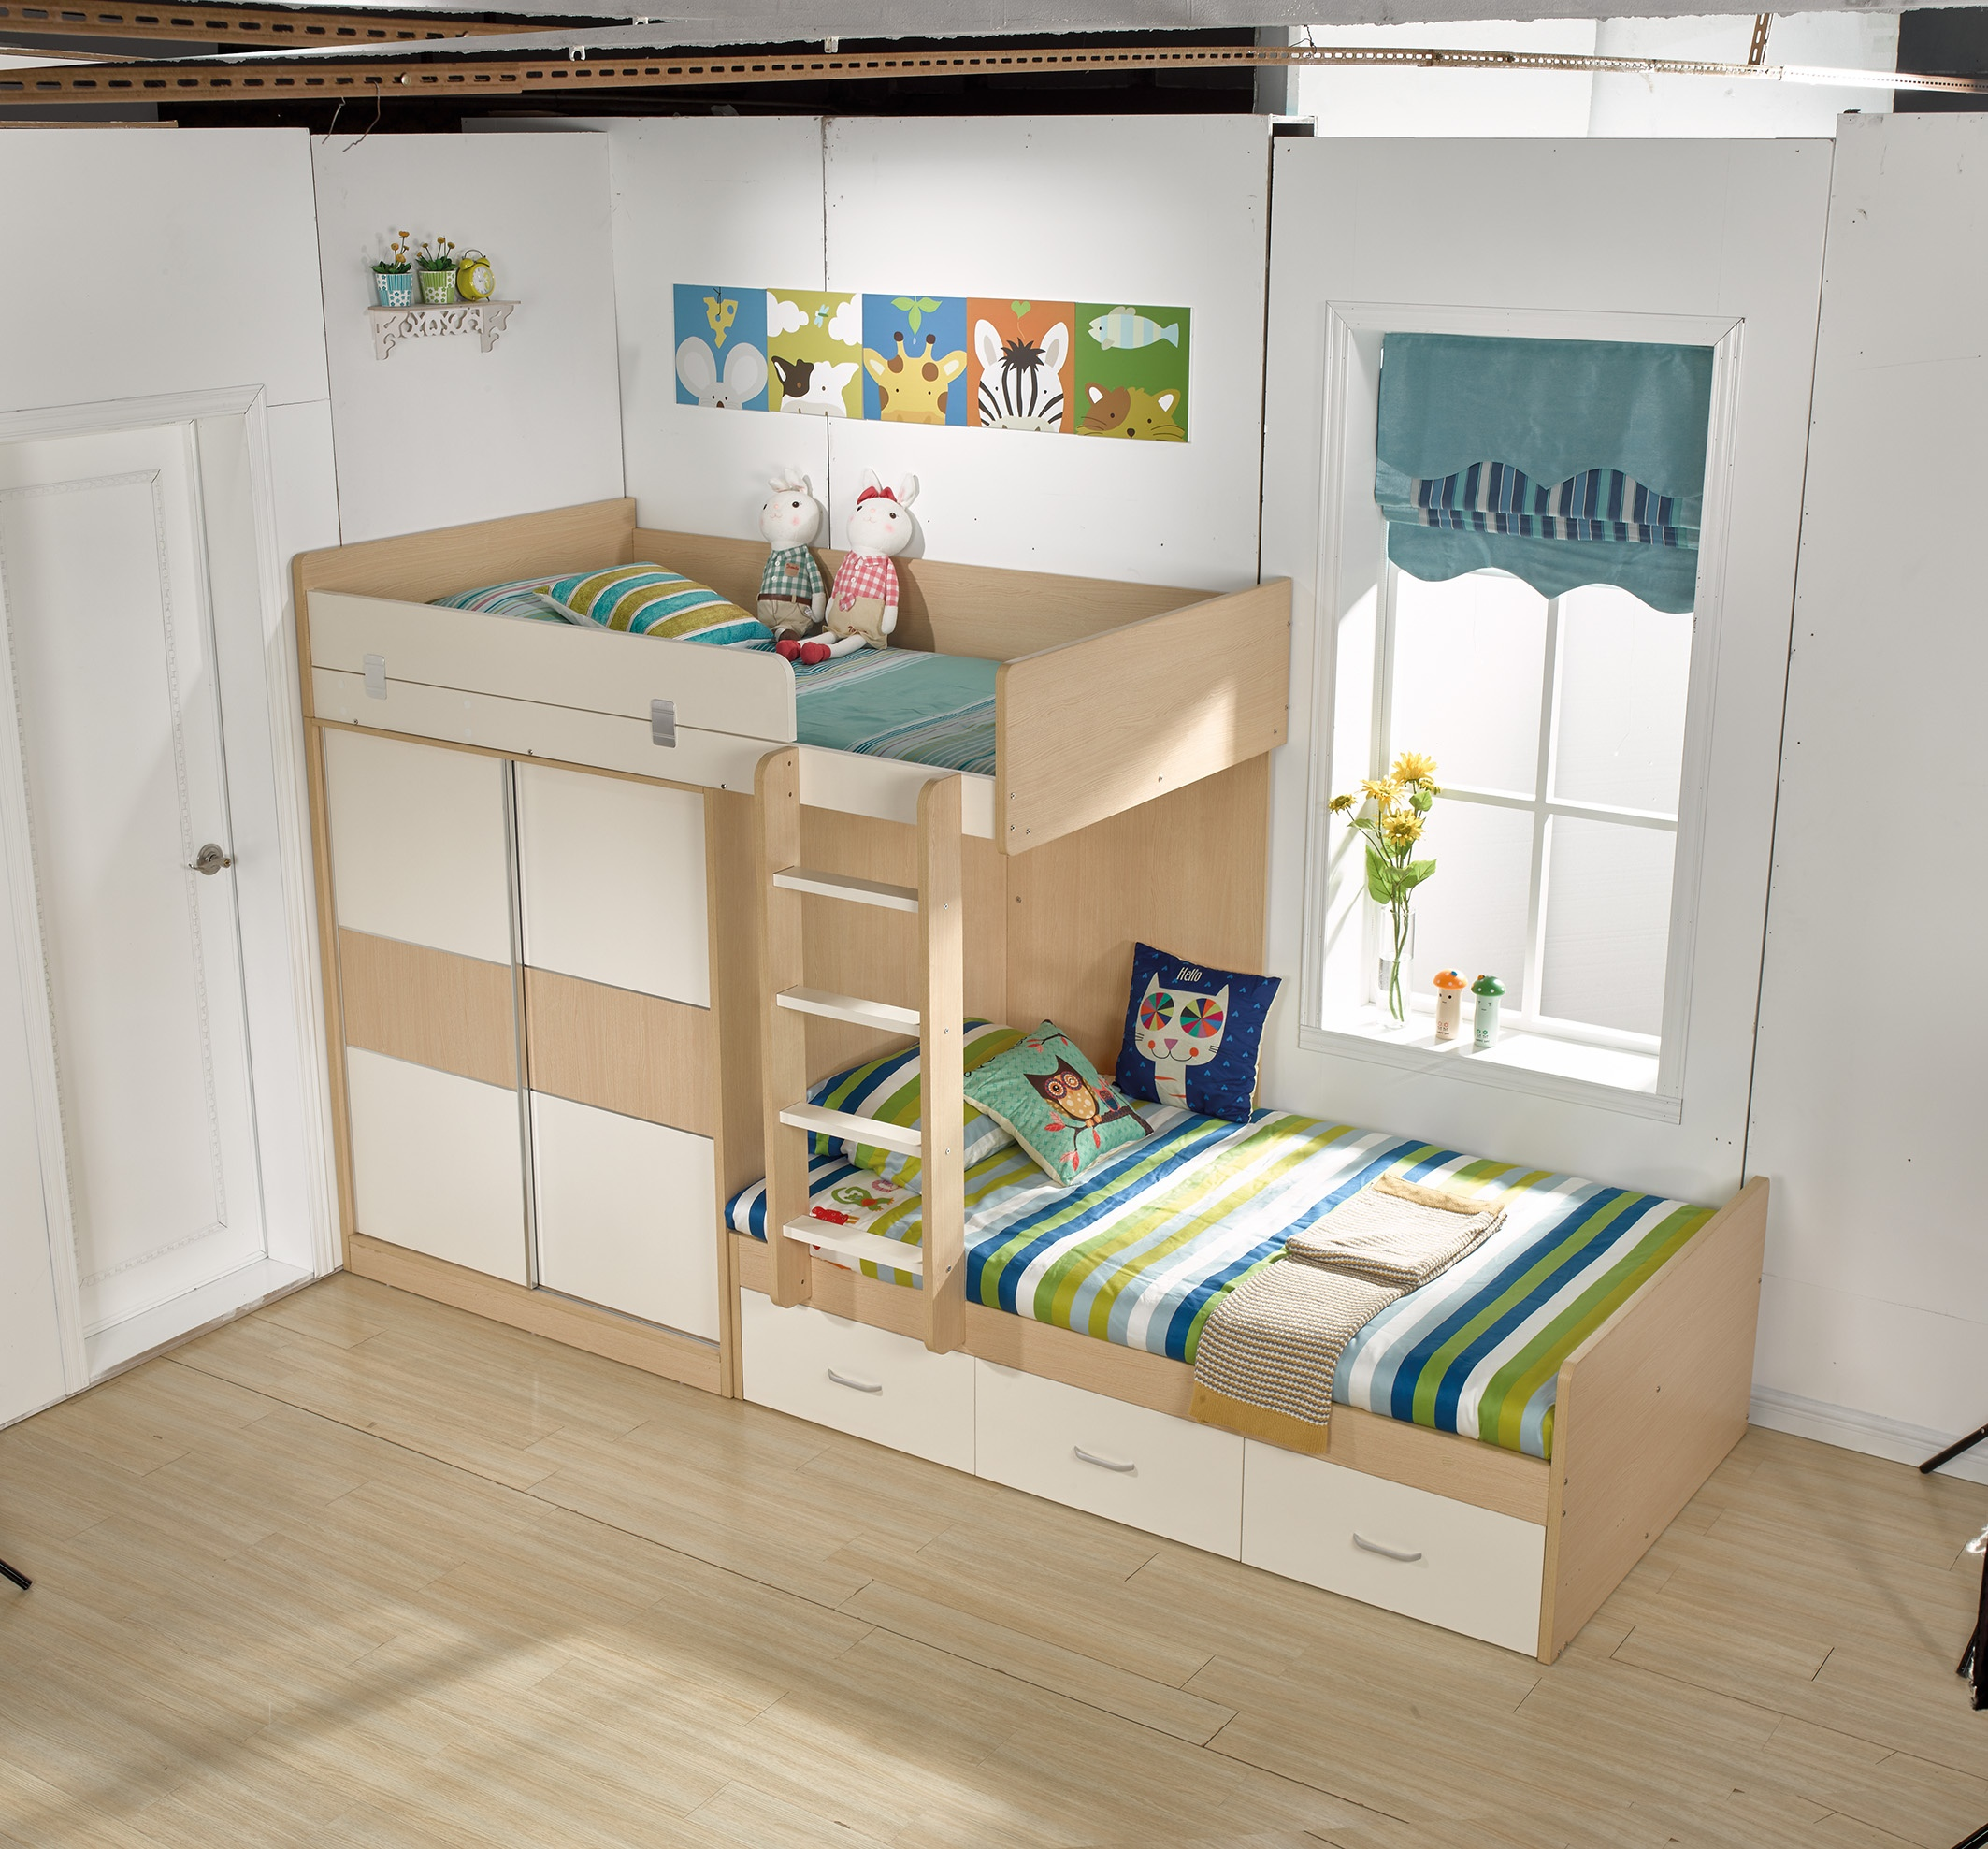 Children Bunk Bed With Wardrobe Being Customization Multiple Bed Buy Kids Bunk Bed Customization Multiple Bed Bunk Bed With Wardrobe Product On Alibaba Com